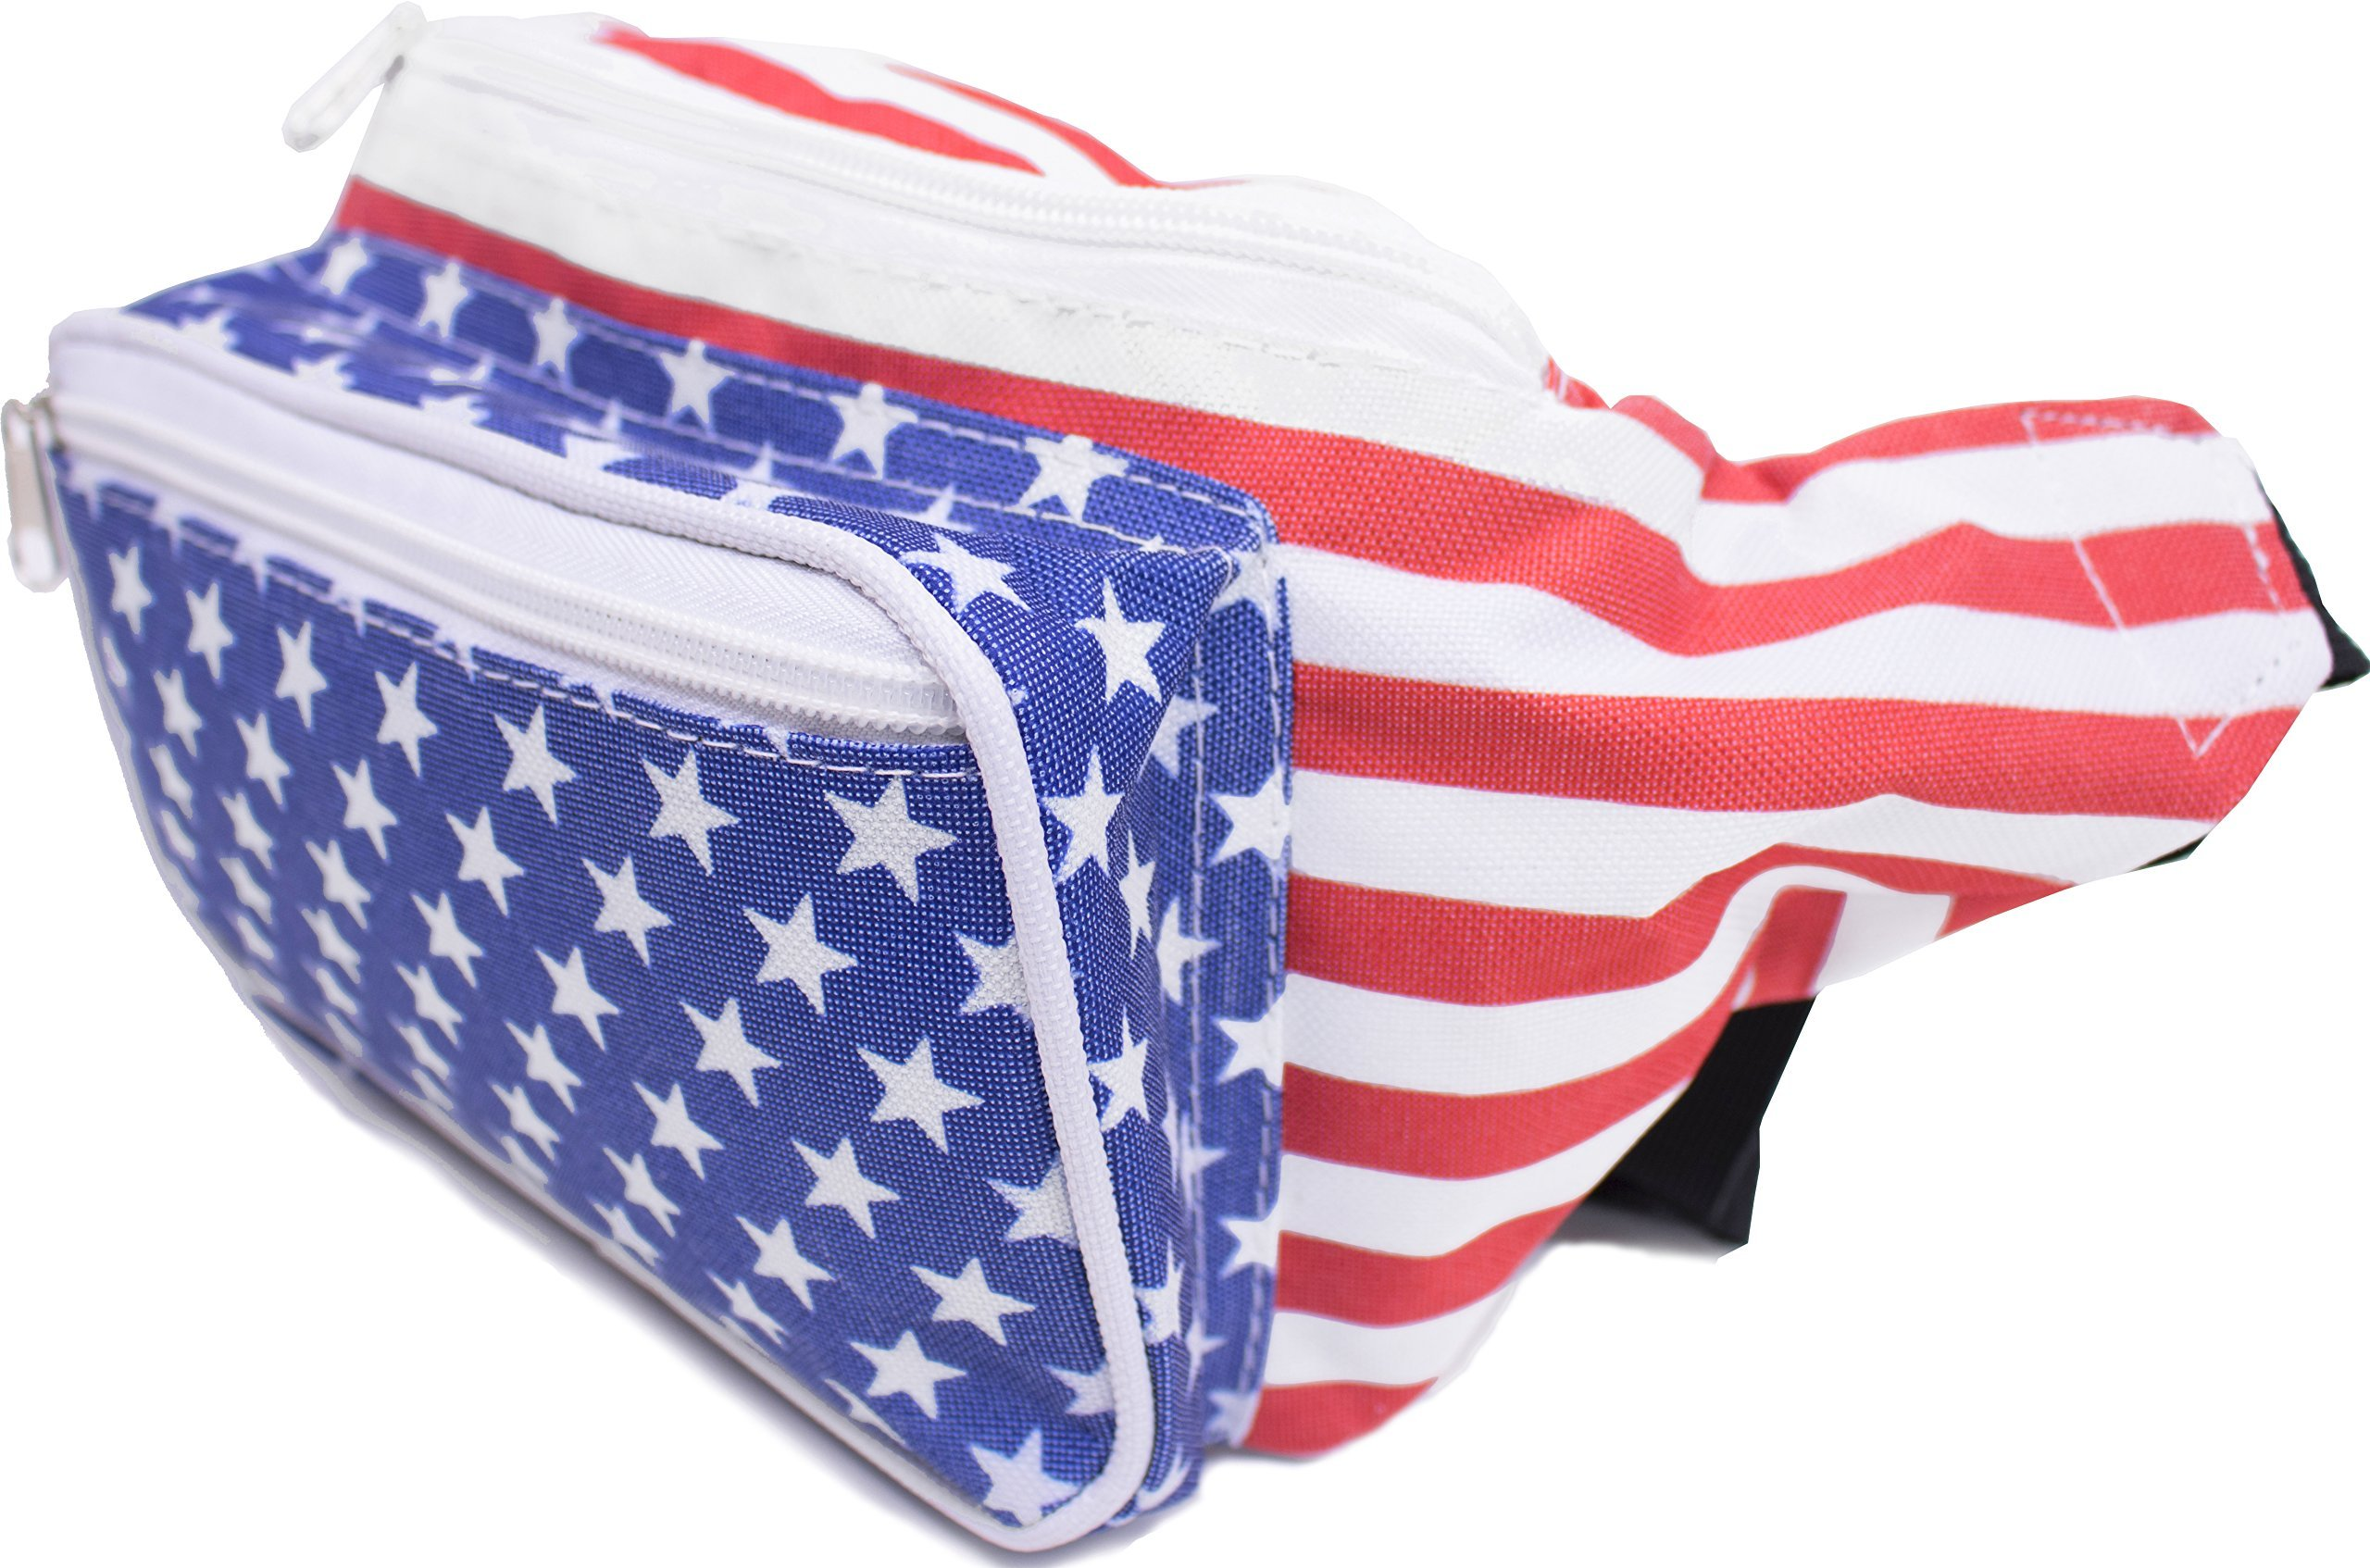 Sojourner American Flag Fanny Pack - USA Packs, 4th of July, Stars and Stripes, Red White, and Blue Eagle Waist Bag Belt Bags Bumbag